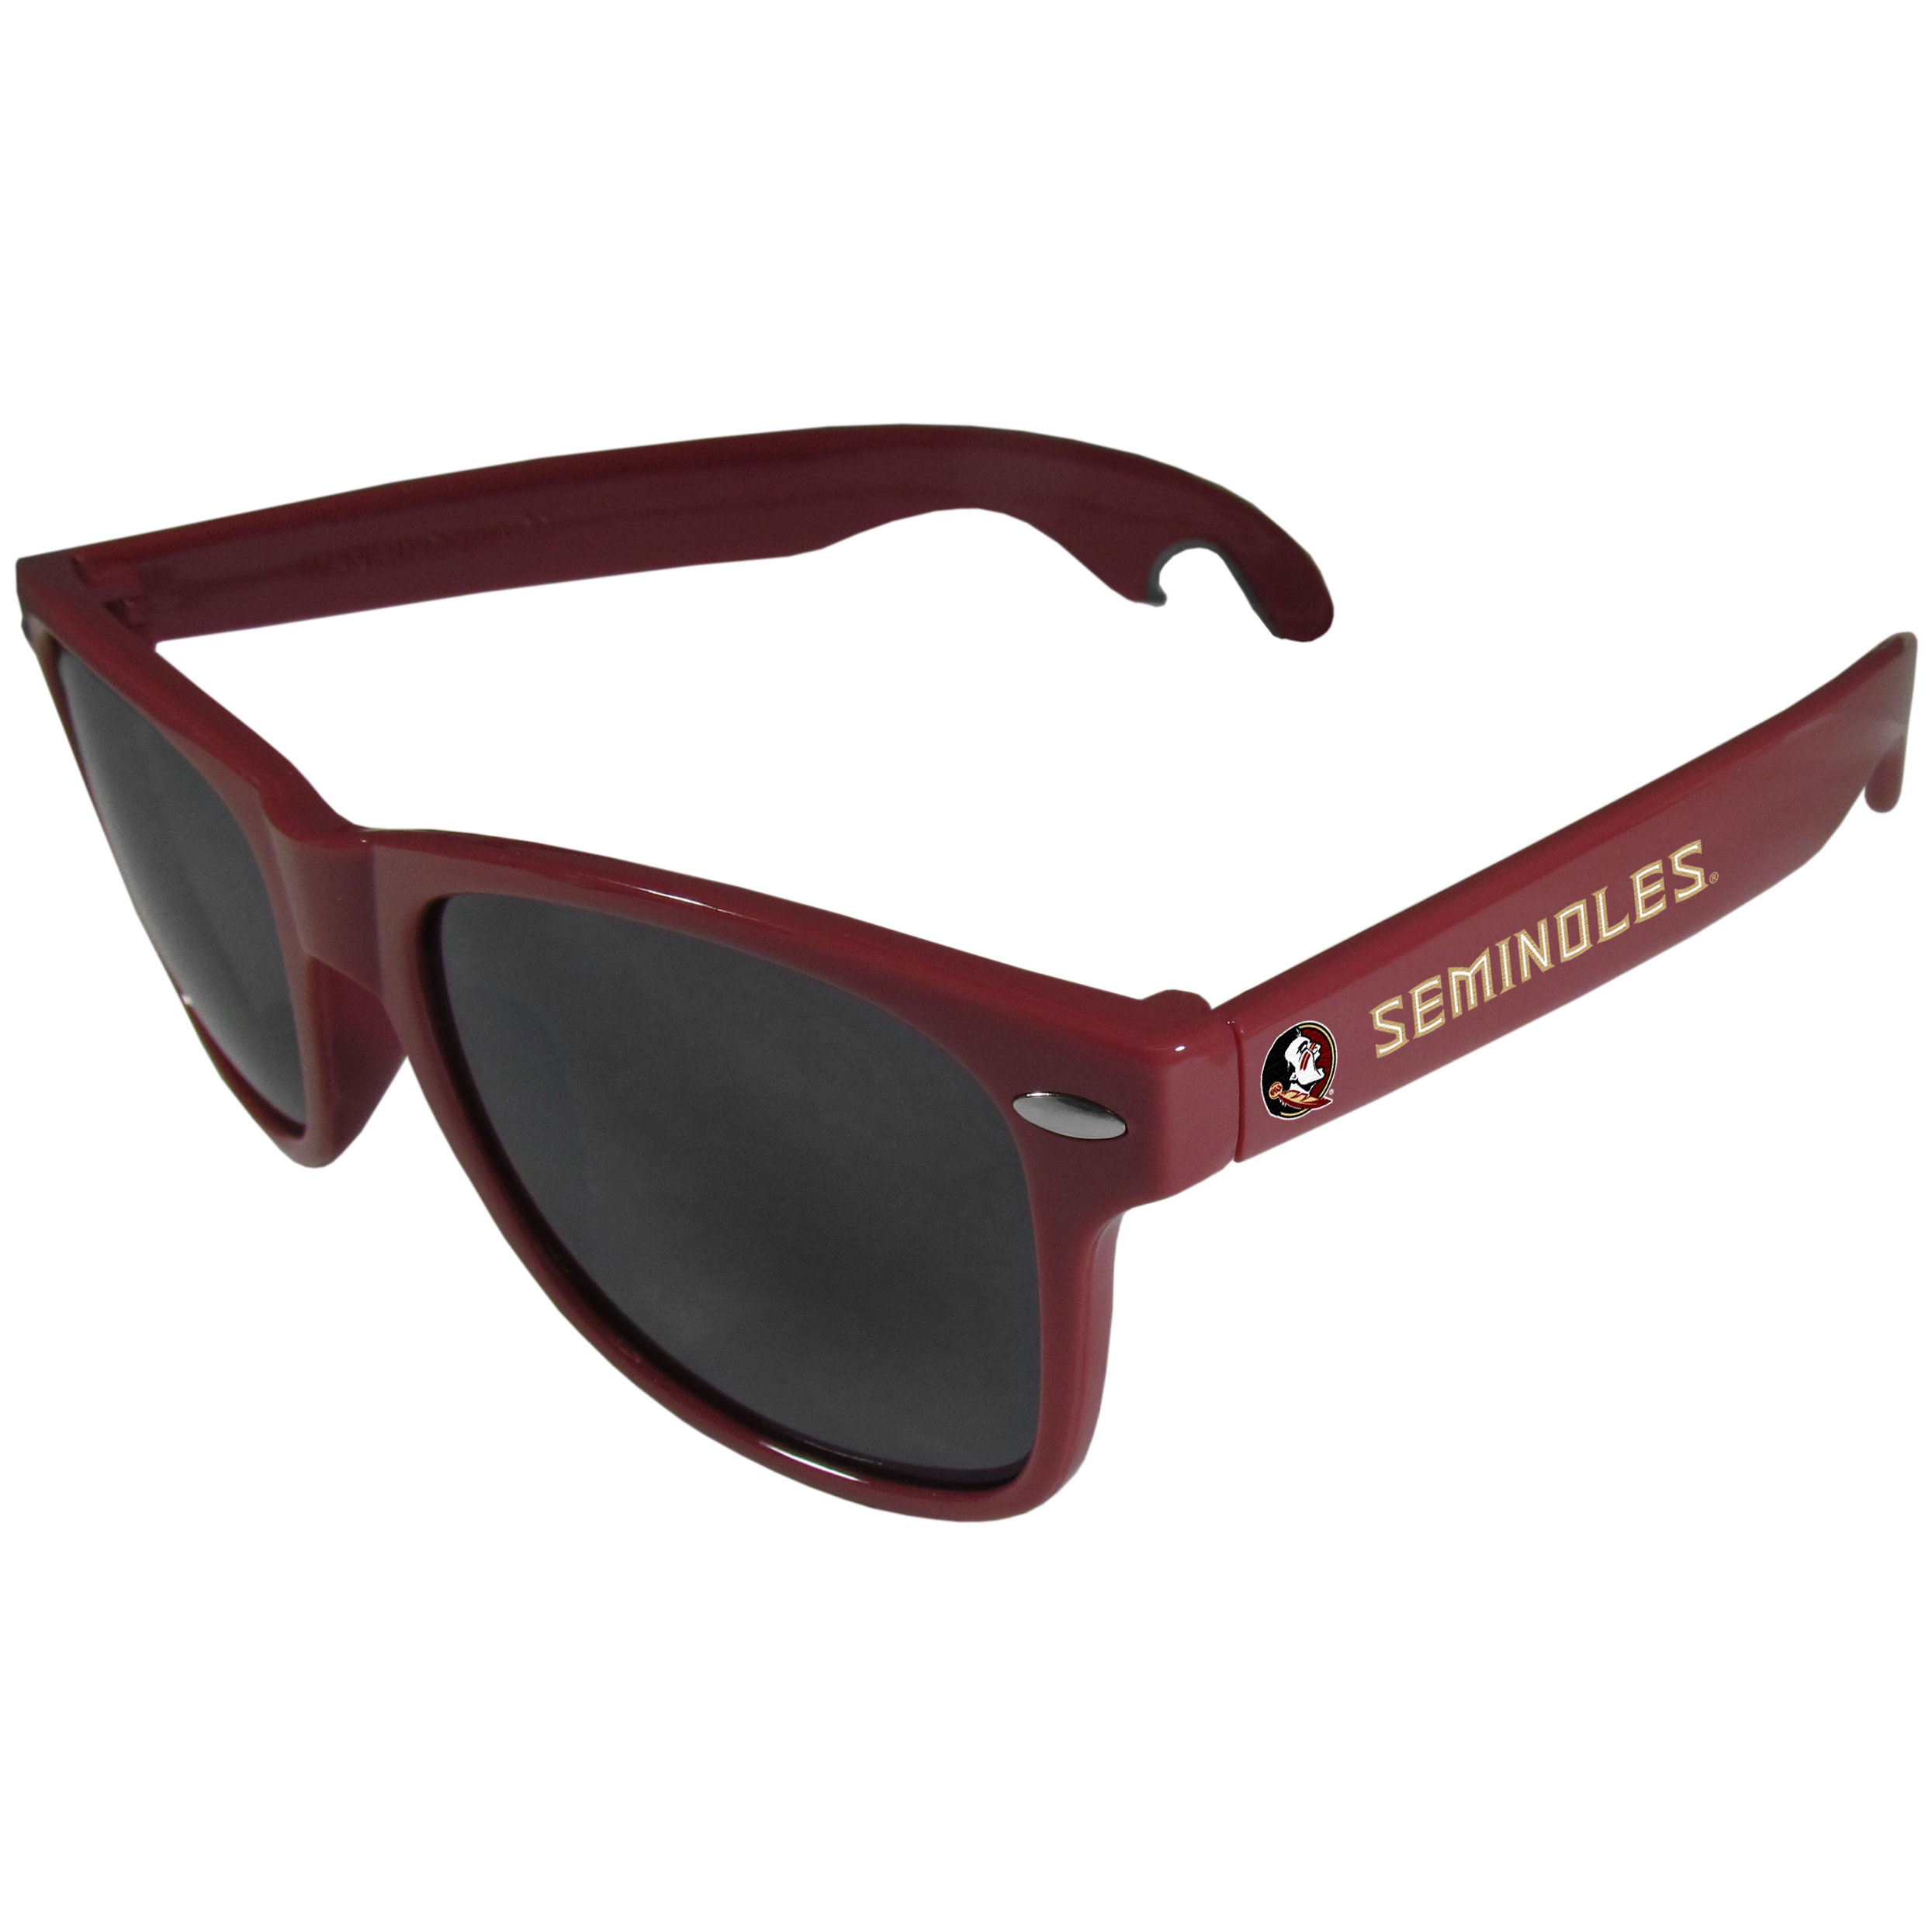 Florida St. Seminoles Beachfarer Bottle Opener Sunglasses, Maroon - Seriously, these sunglasses open bottles! Keep the party going with these amazing Florida St. Seminoles bottle opener sunglasses. The stylish retro frames feature team designs on the arms and functional bottle openers on the end of the arms. Whether you are at the beach or having a backyard BBQ on game day, these shades will keep your eyes protected with 100% UVA/UVB protection and keep you hydrated with the handy bottle opener arms.